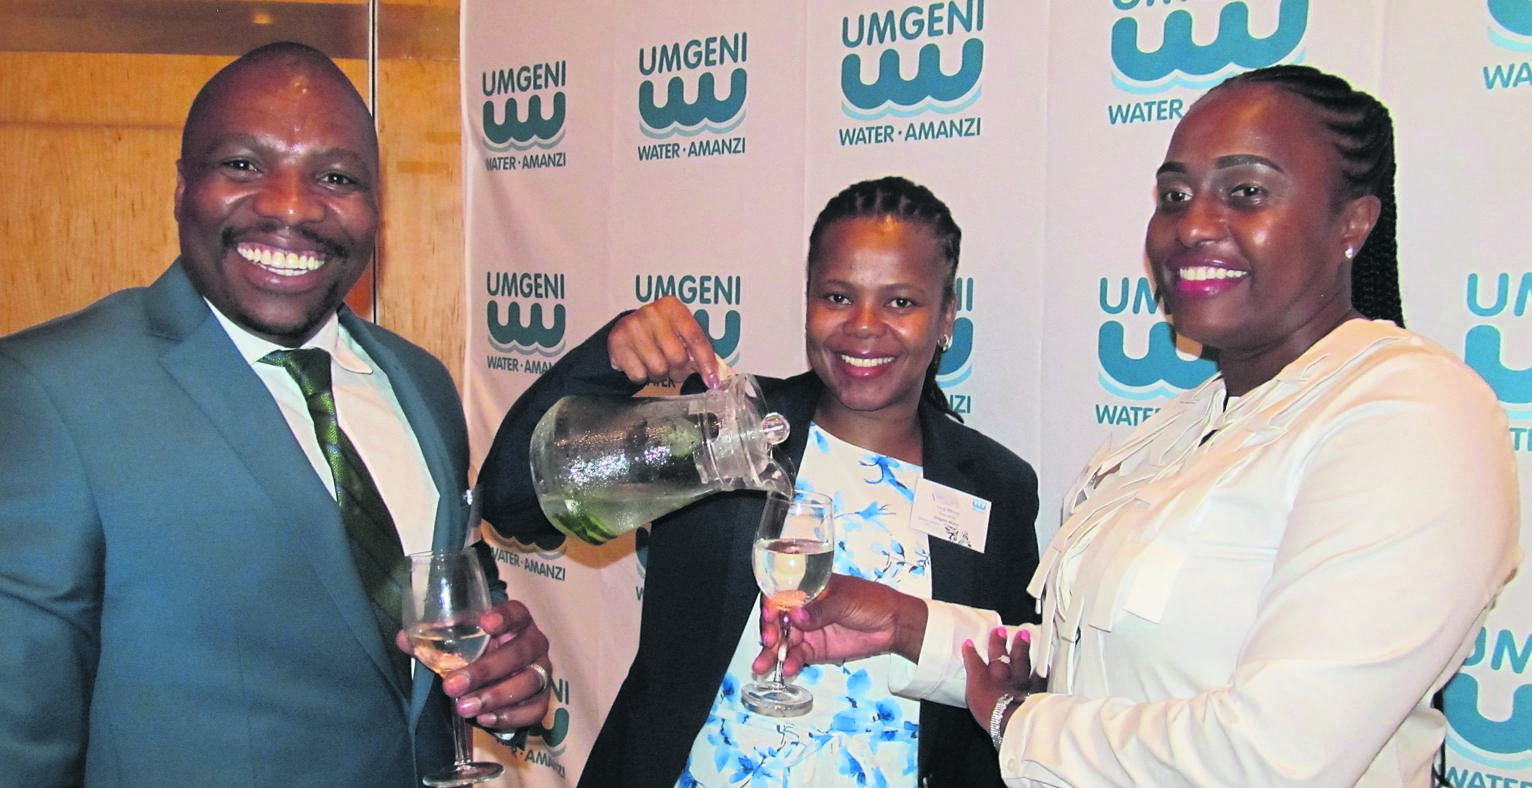 Umgeni Water's chief executive Thami Hlongwa, chief financial officer Lungi Mkhize (centre) and chair of the board Ziphozethu Mathenjwa toasting to another successful year for the water utility.PHOTO: NOKUTHULA NTULI